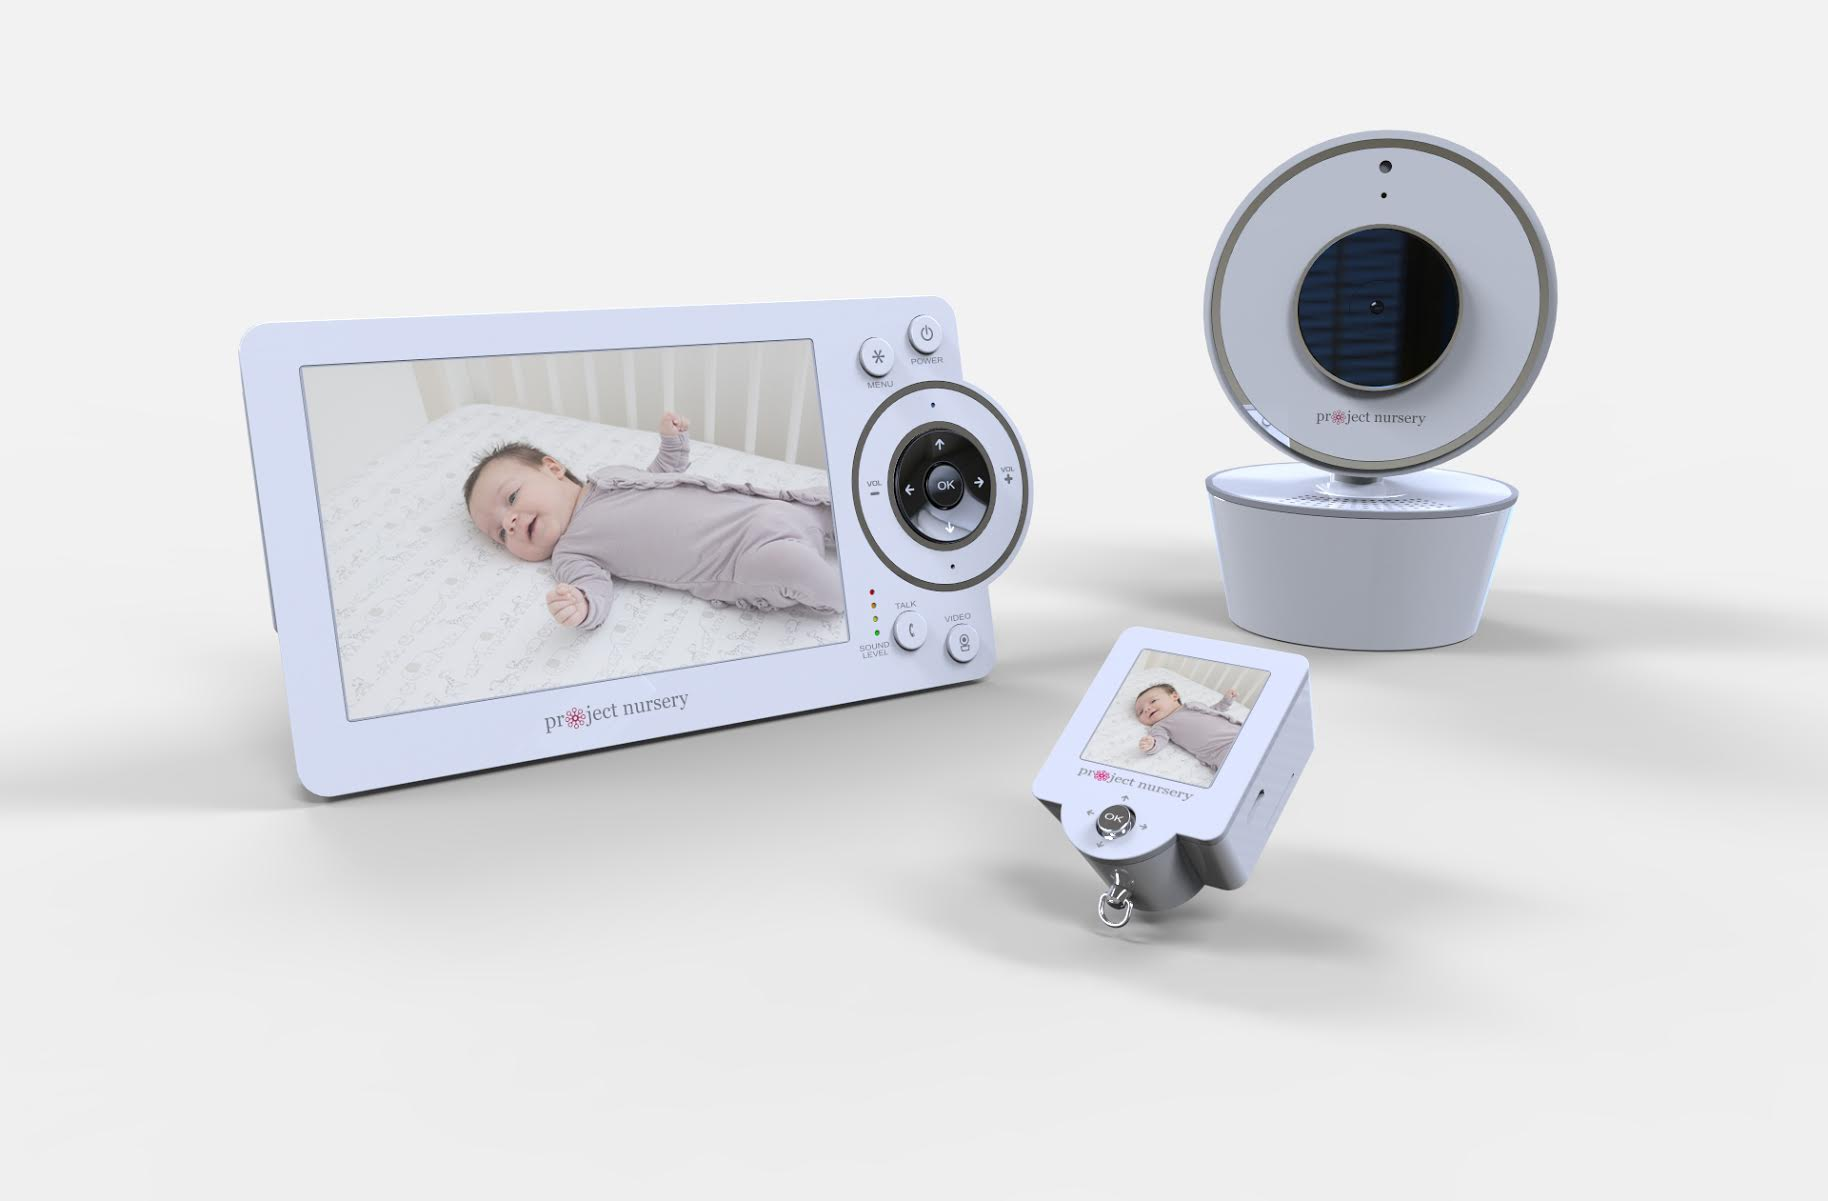 Baby Sensor Pn Launches Its New Baby Monitor At Ces Project Nursery